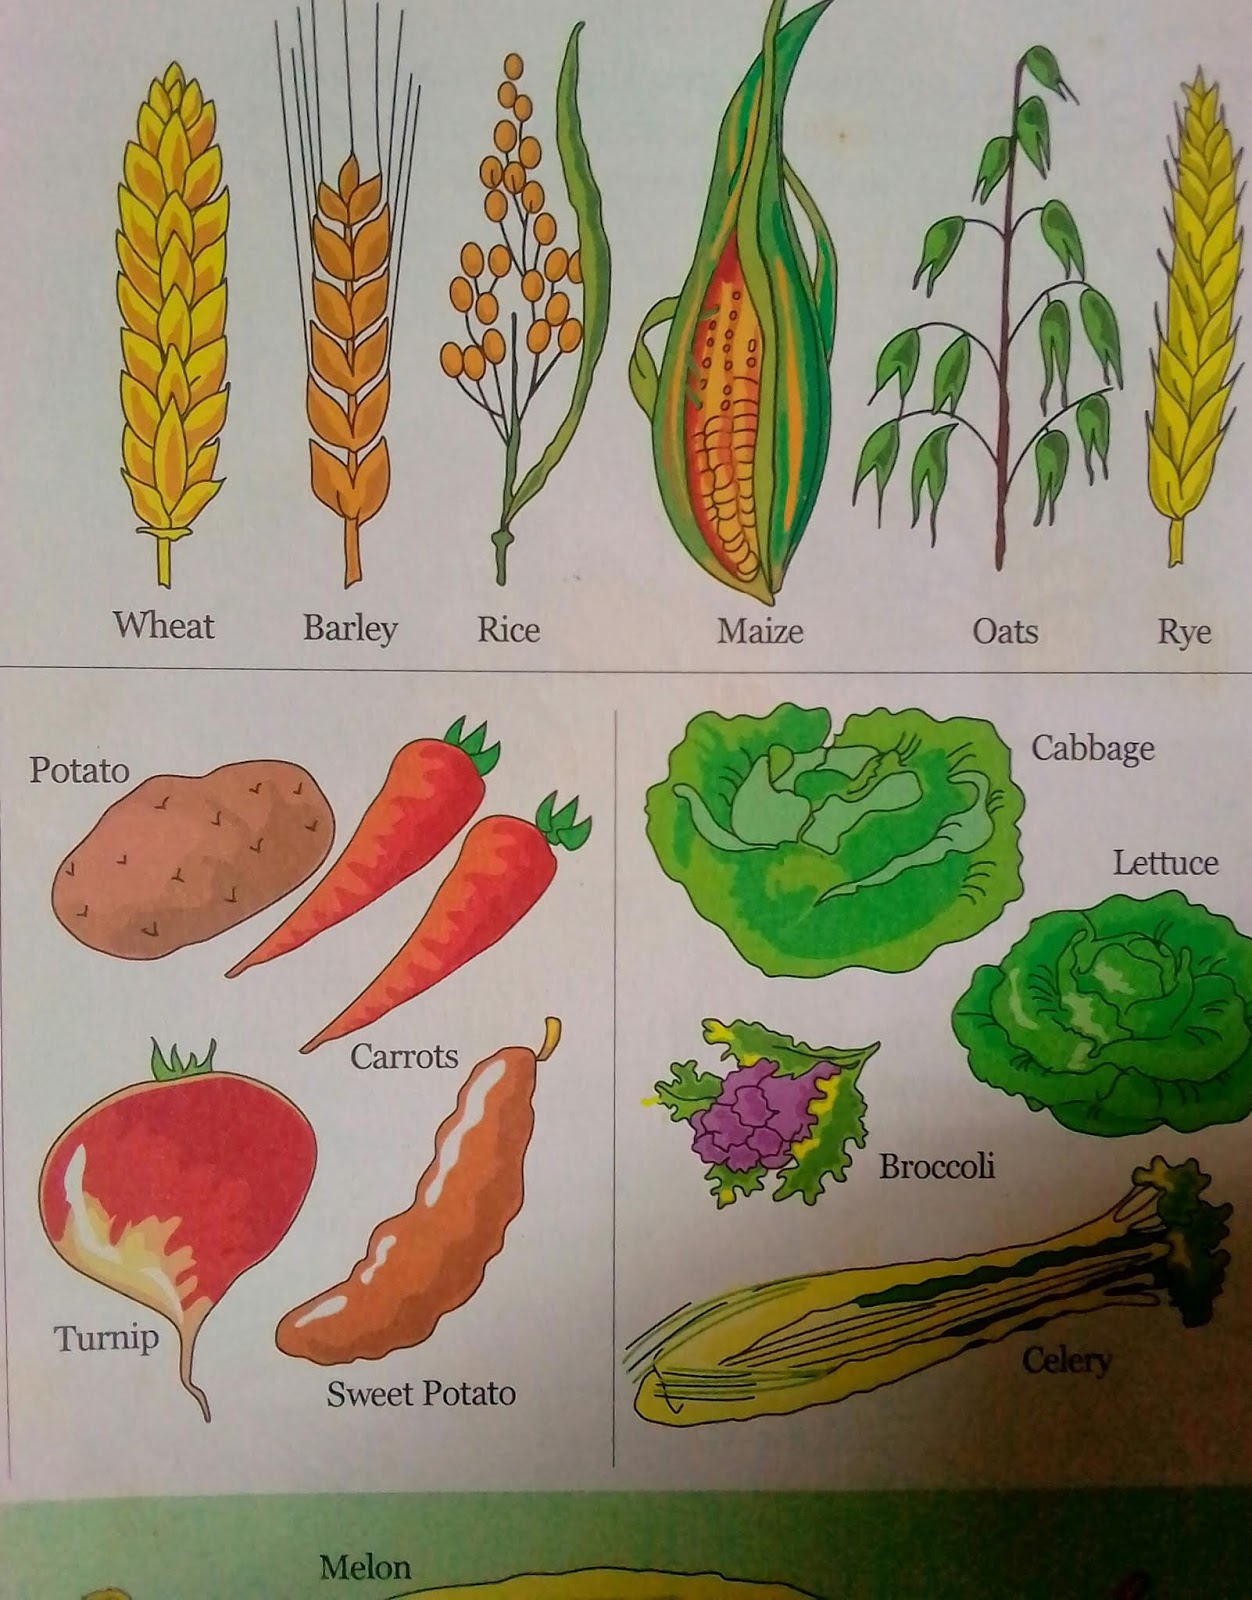 Open Learning Centre: CLASSIFICATION OF CROPS